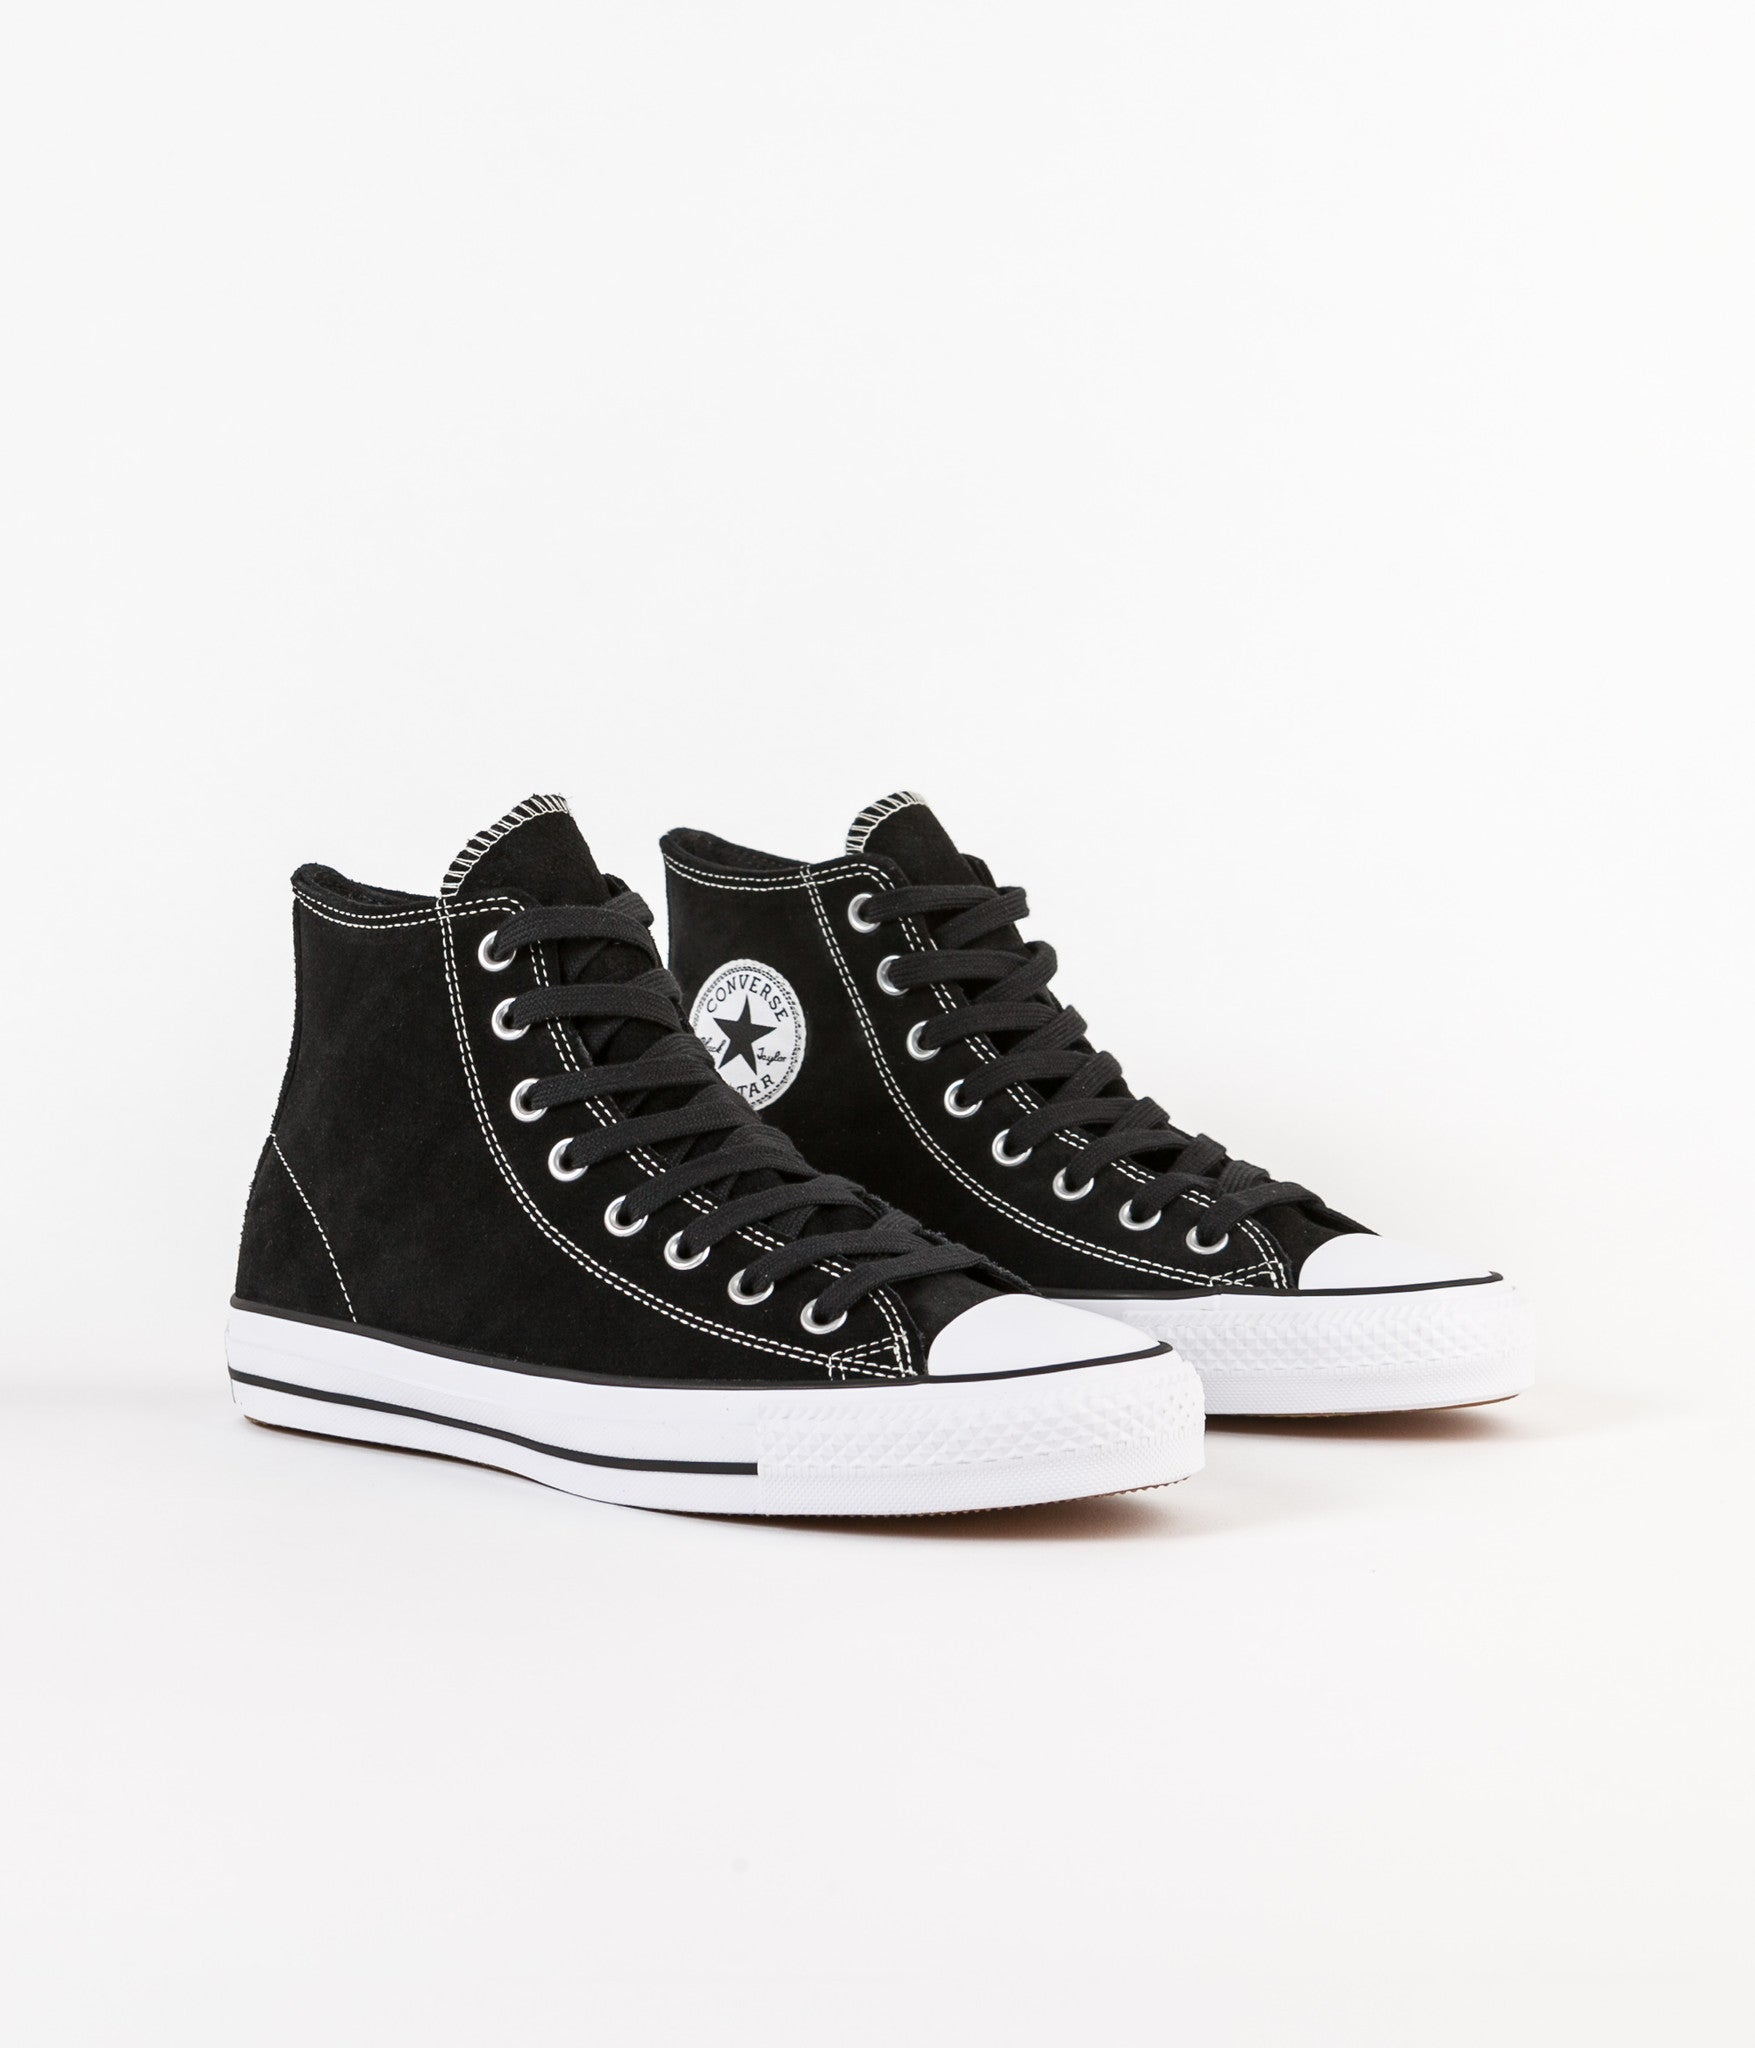 a1aab45c499a07 ... Converse CTAS Pro Hi Shoes - Black   White ...